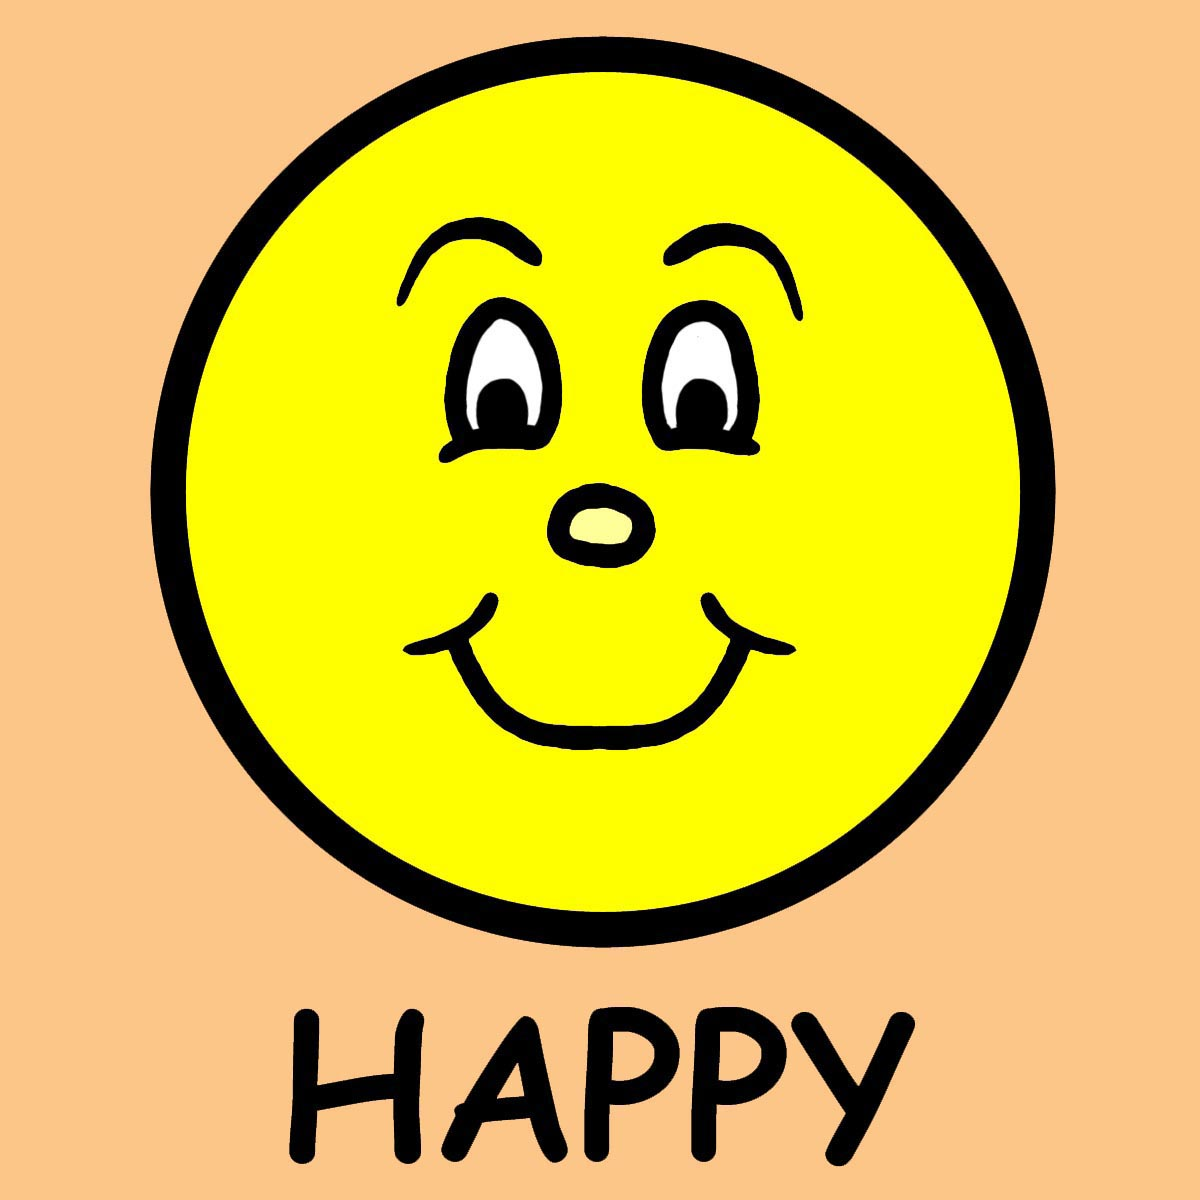 Happy Girl Face Clipart | Clipart Panda - Free Clipart Images